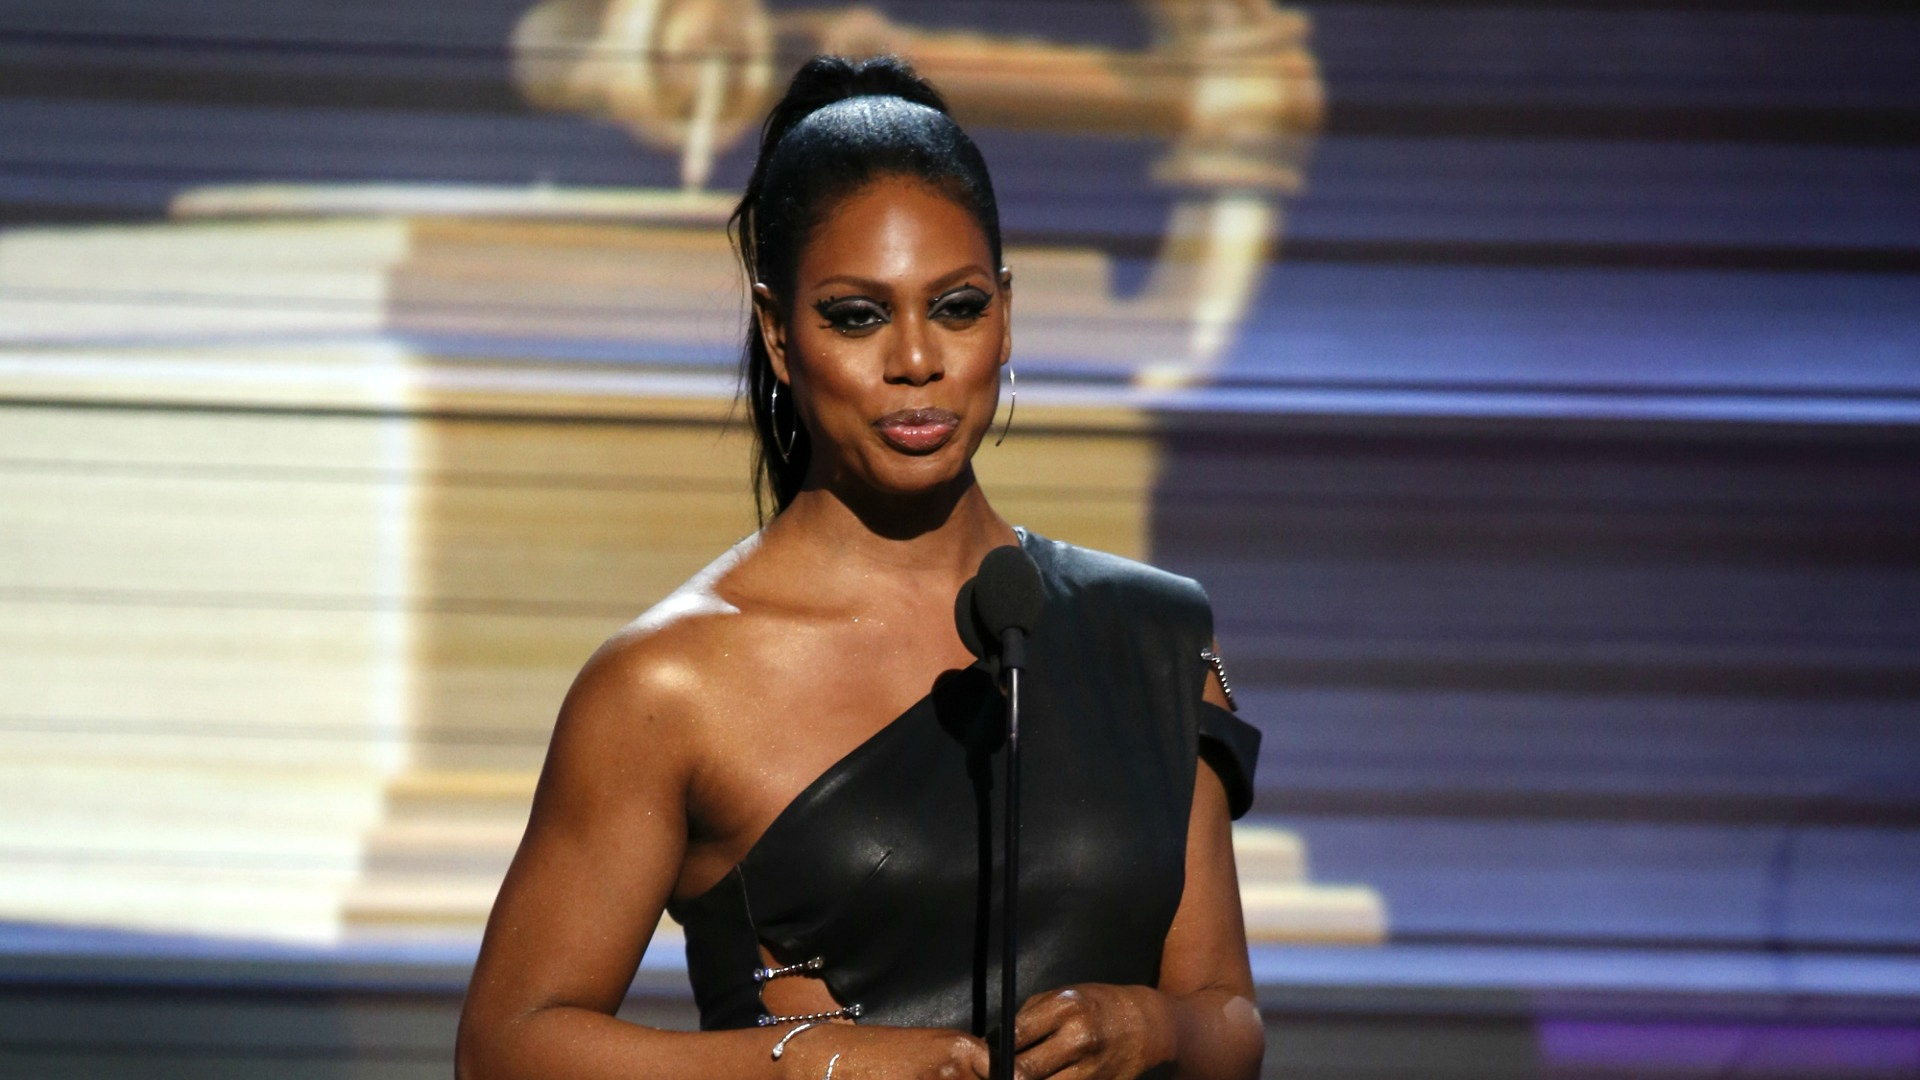 Laverne Cox, star of the new CBS drama Doubt, introduced Metallica and Lady Gaga to the GRAMMY stage.